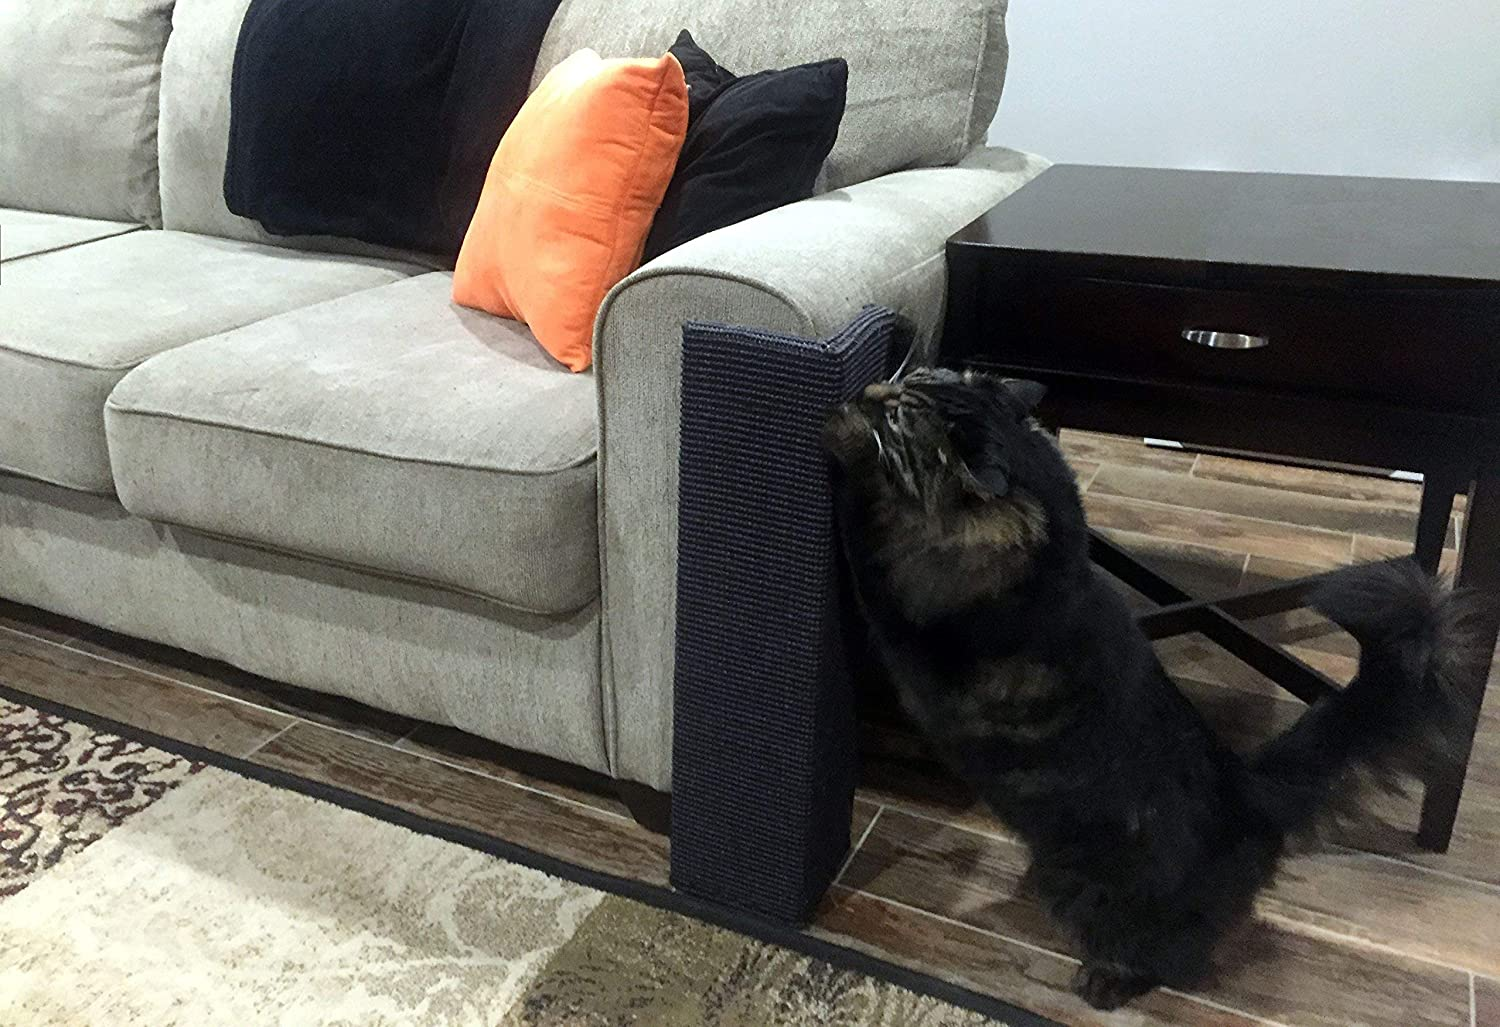 Sofa-Scratcher Squared' Cat Scratching Post & Couch-Corner/Furniture Protector (Charcoal) : Pet Supplies